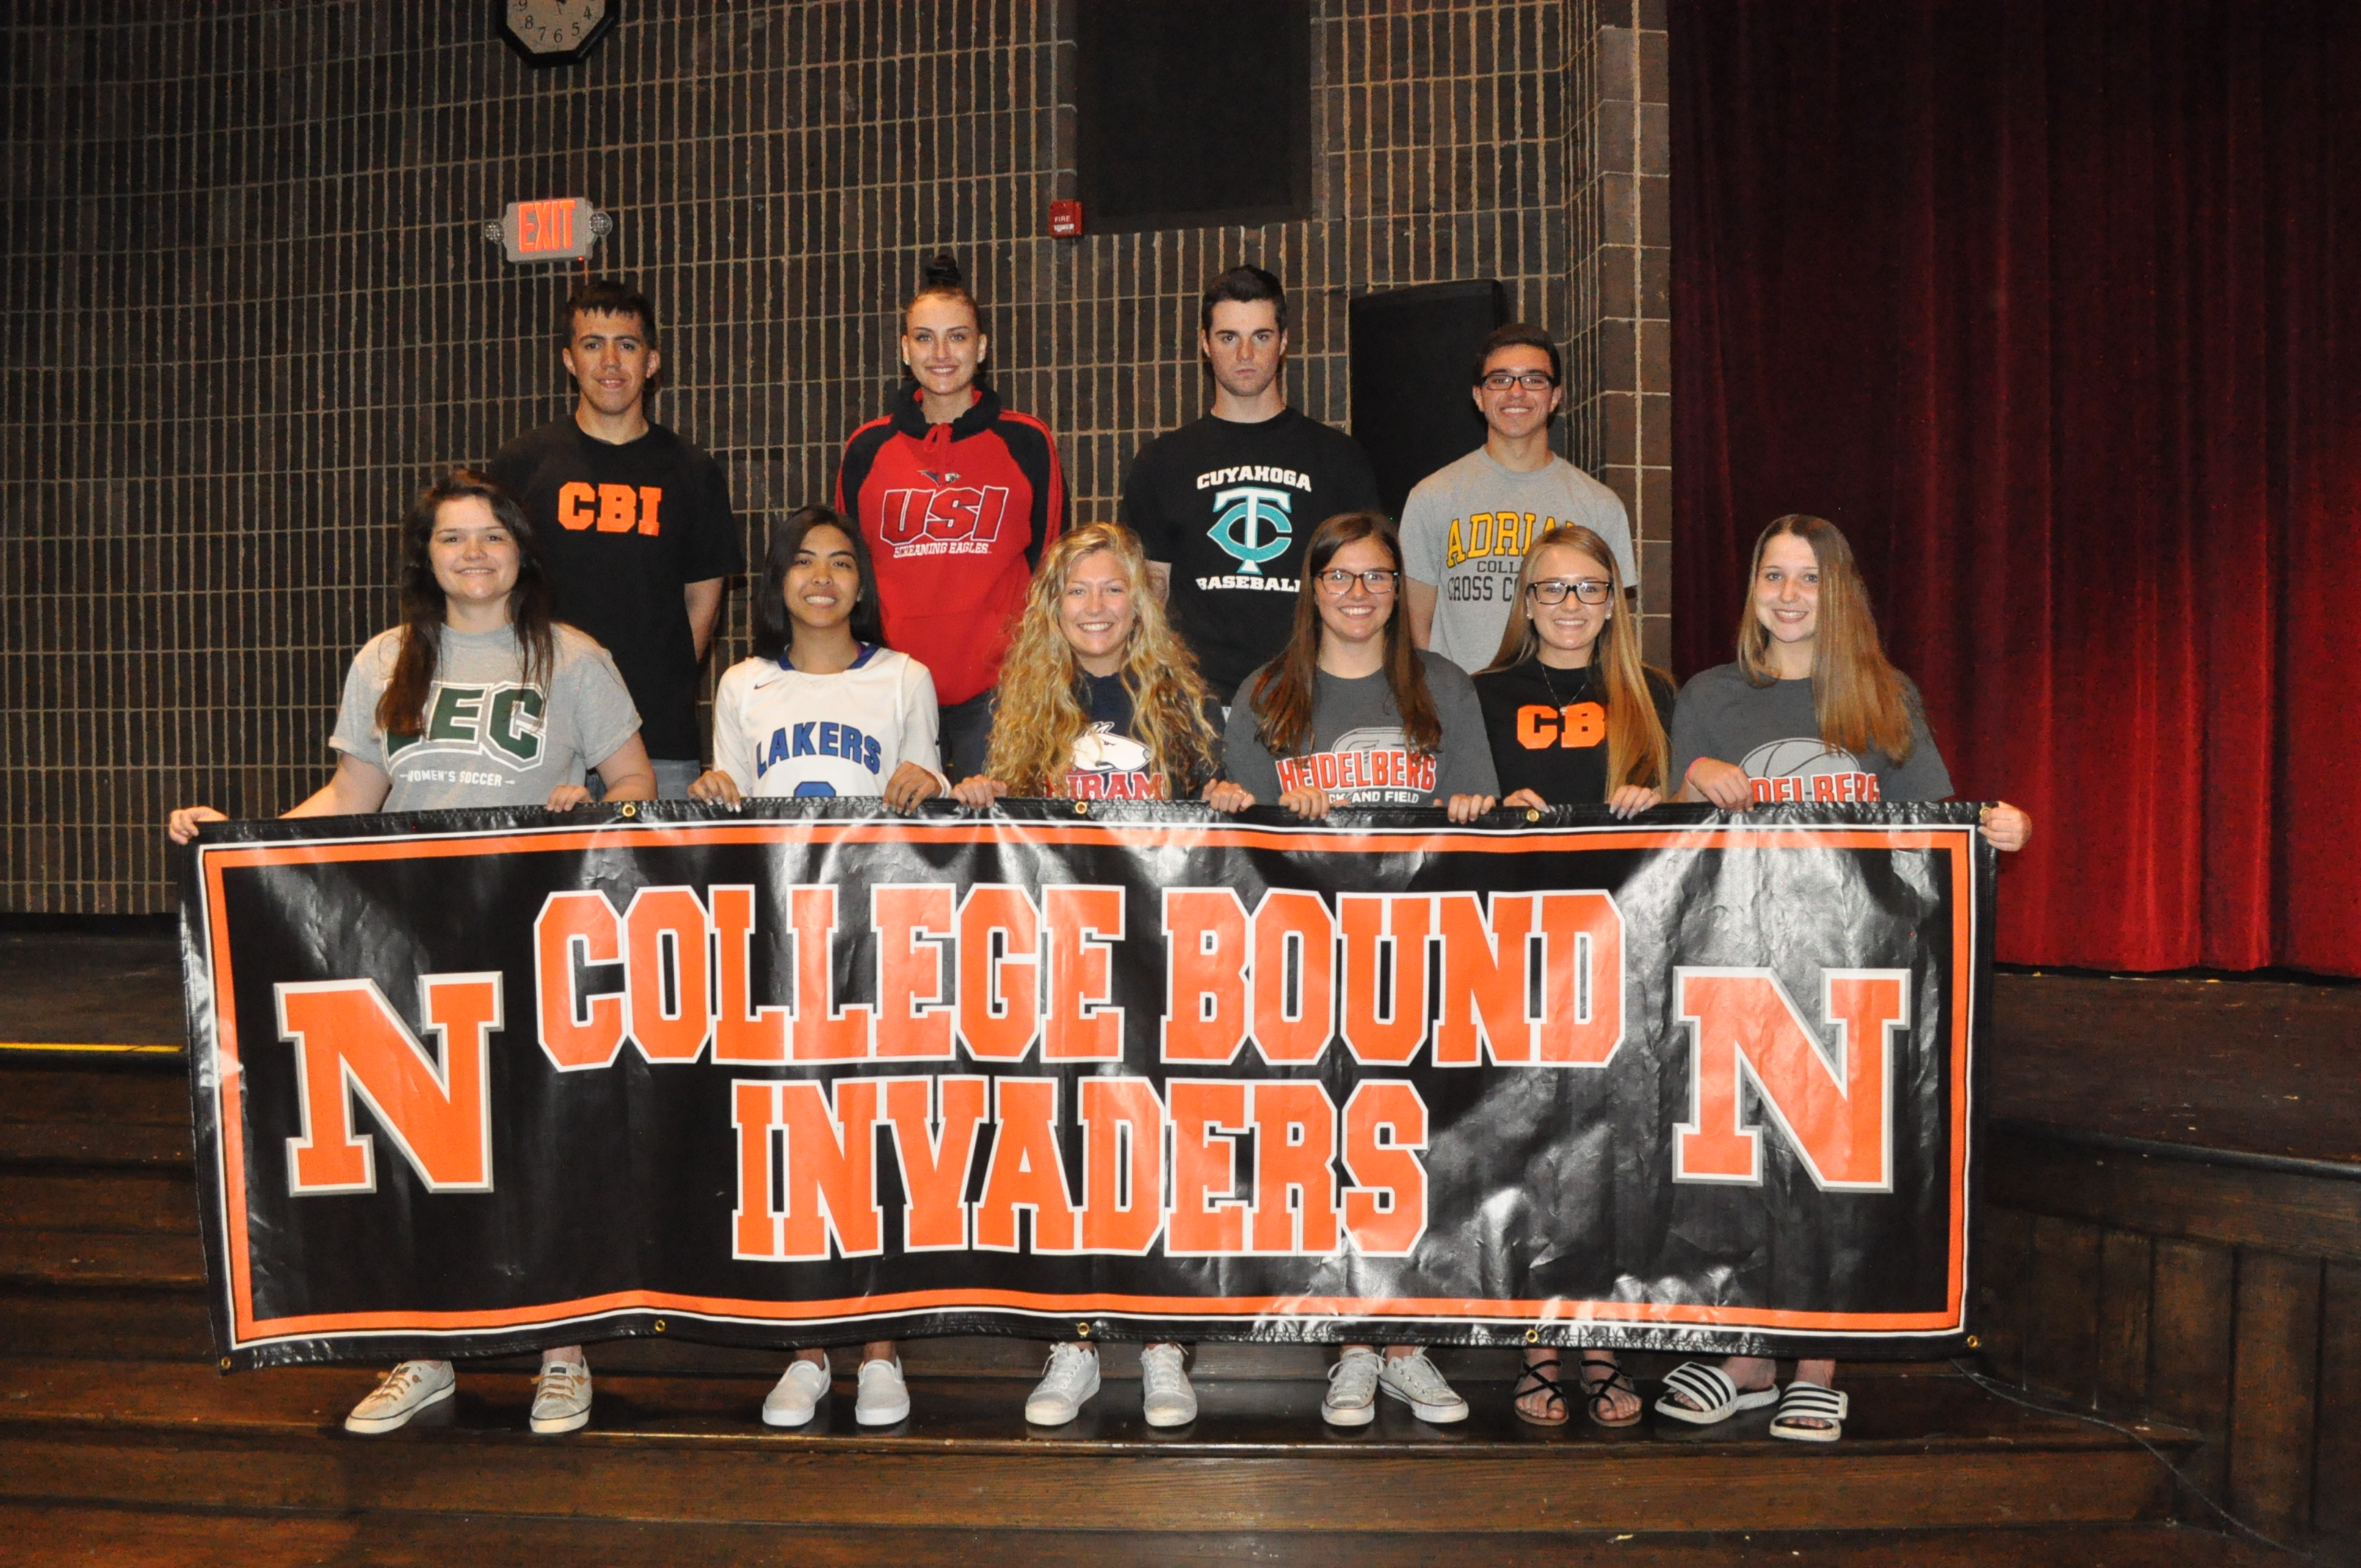 College Bound Invaders!